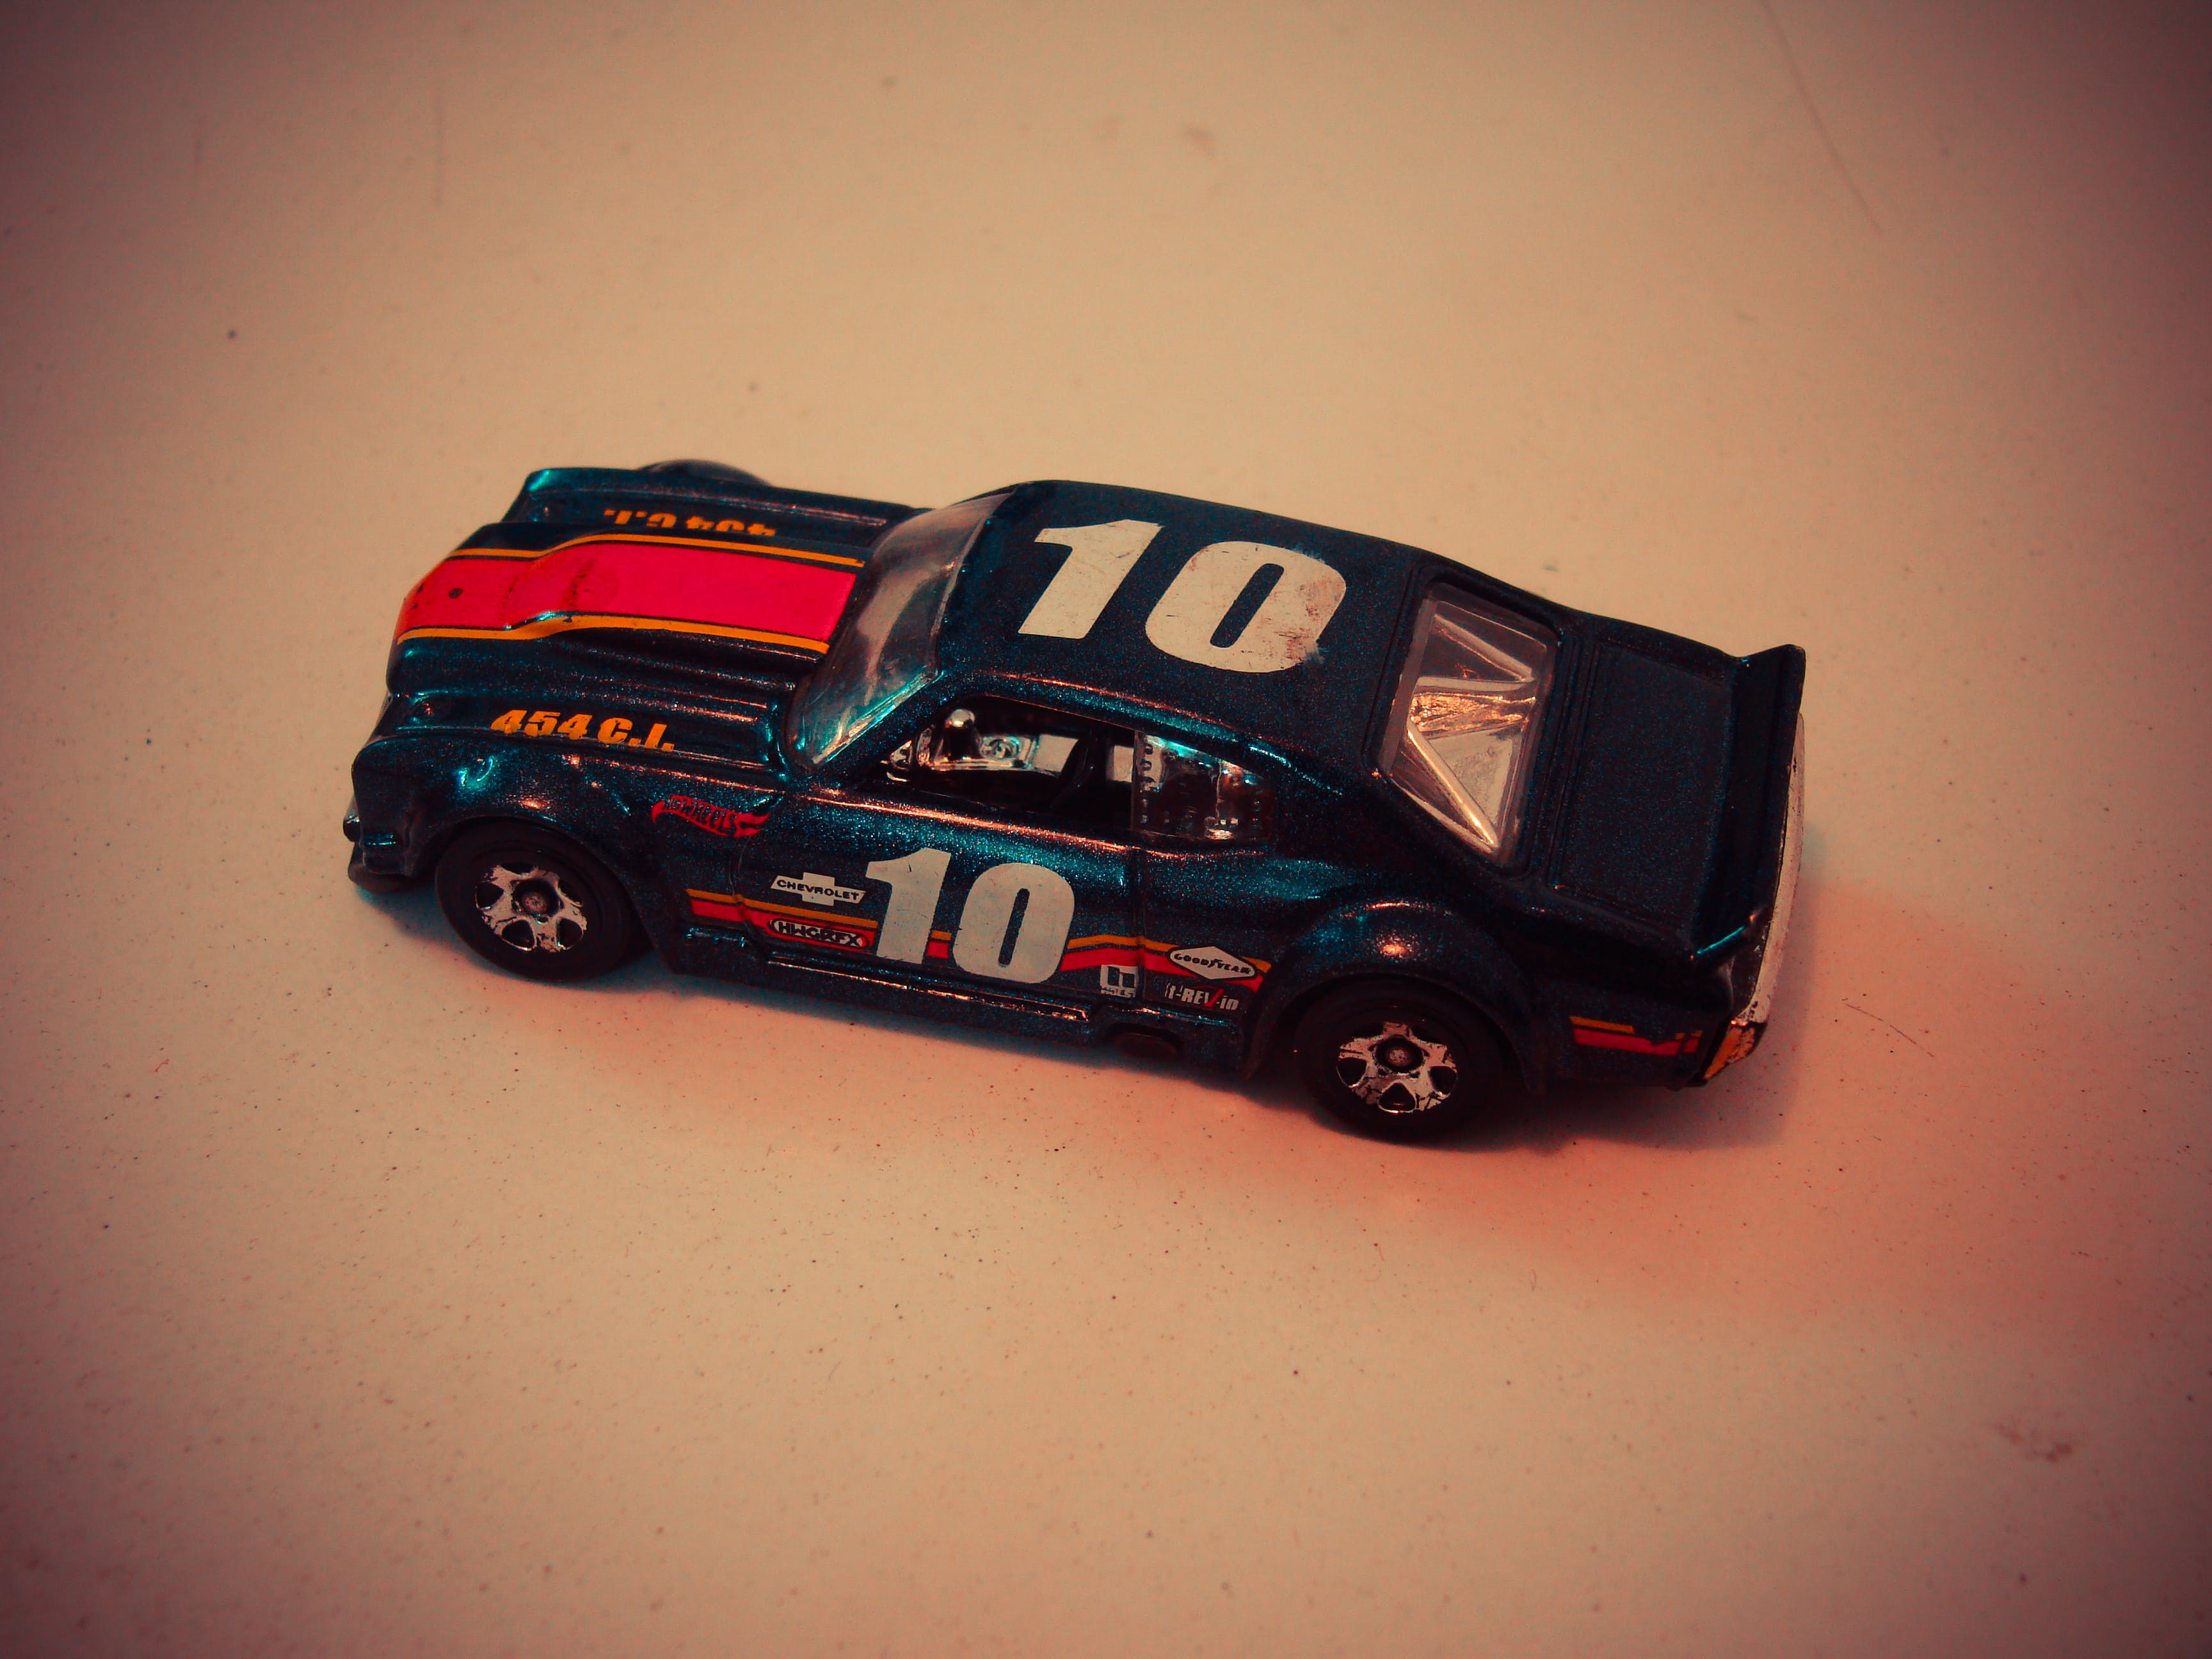 Teal Red and White Die Cast Model of Racing Car